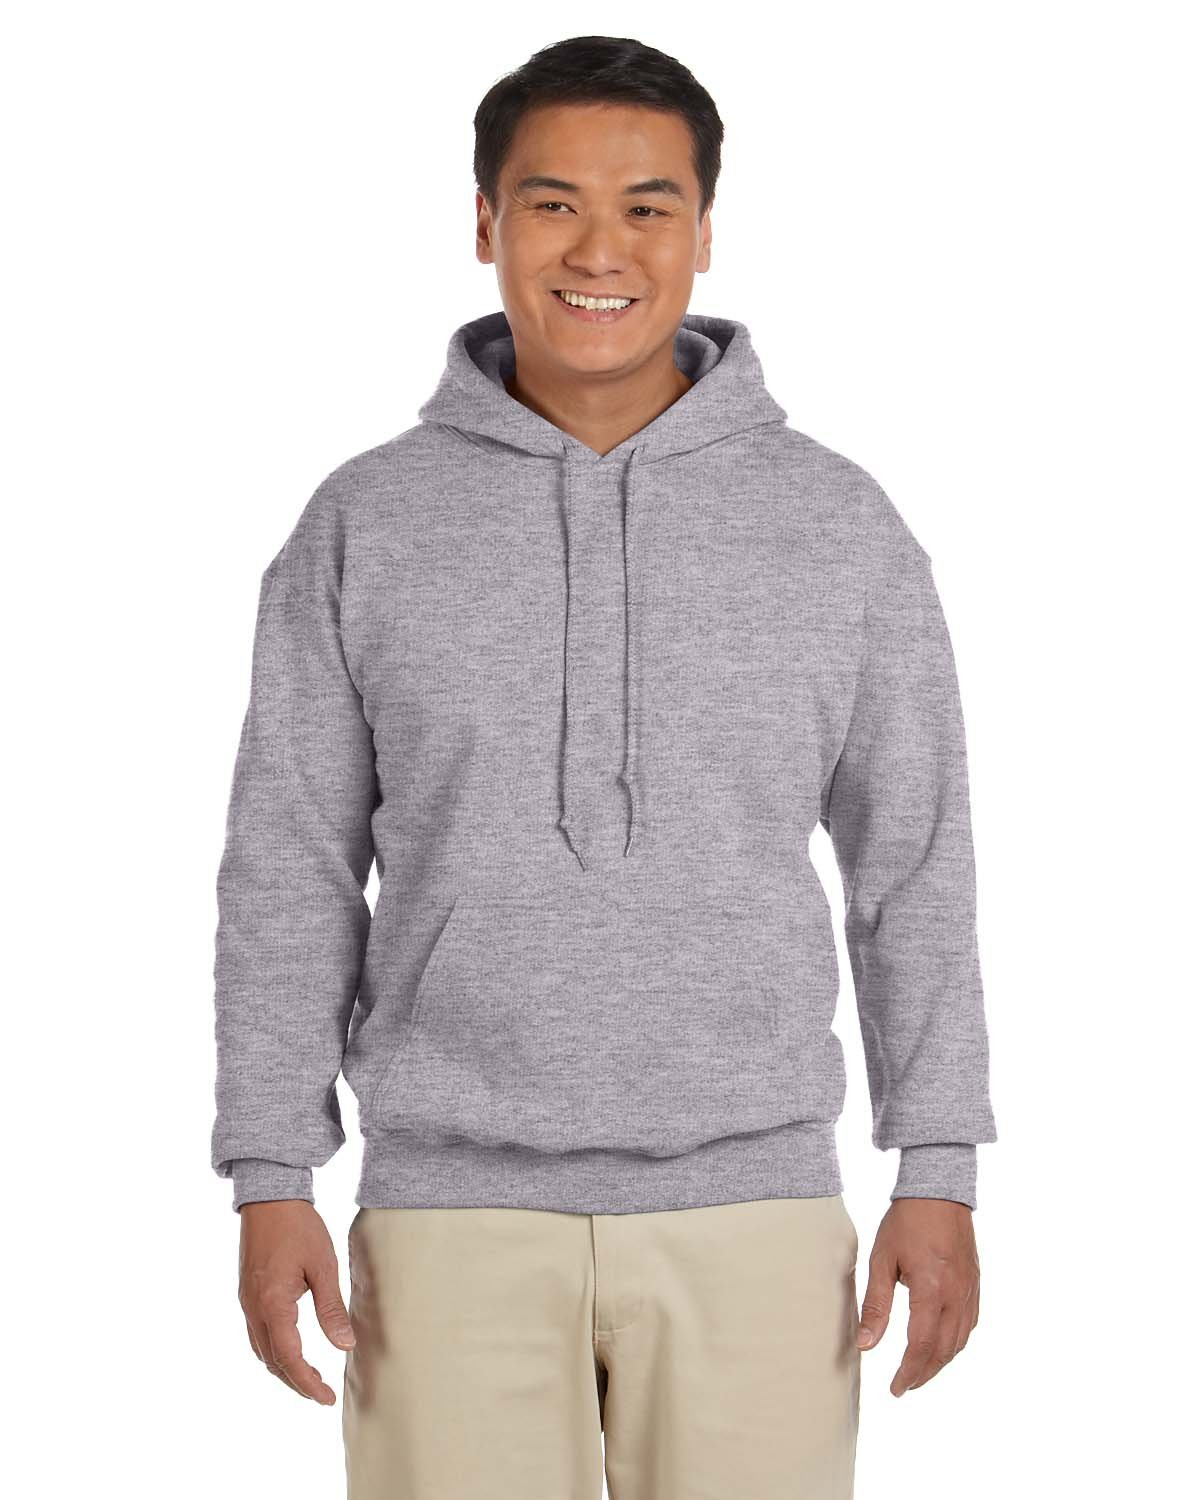 Gildan 18500 - Classic Fit Adult Hooded Sweatshirt Heavy Blend - First Qualit. by Gildan